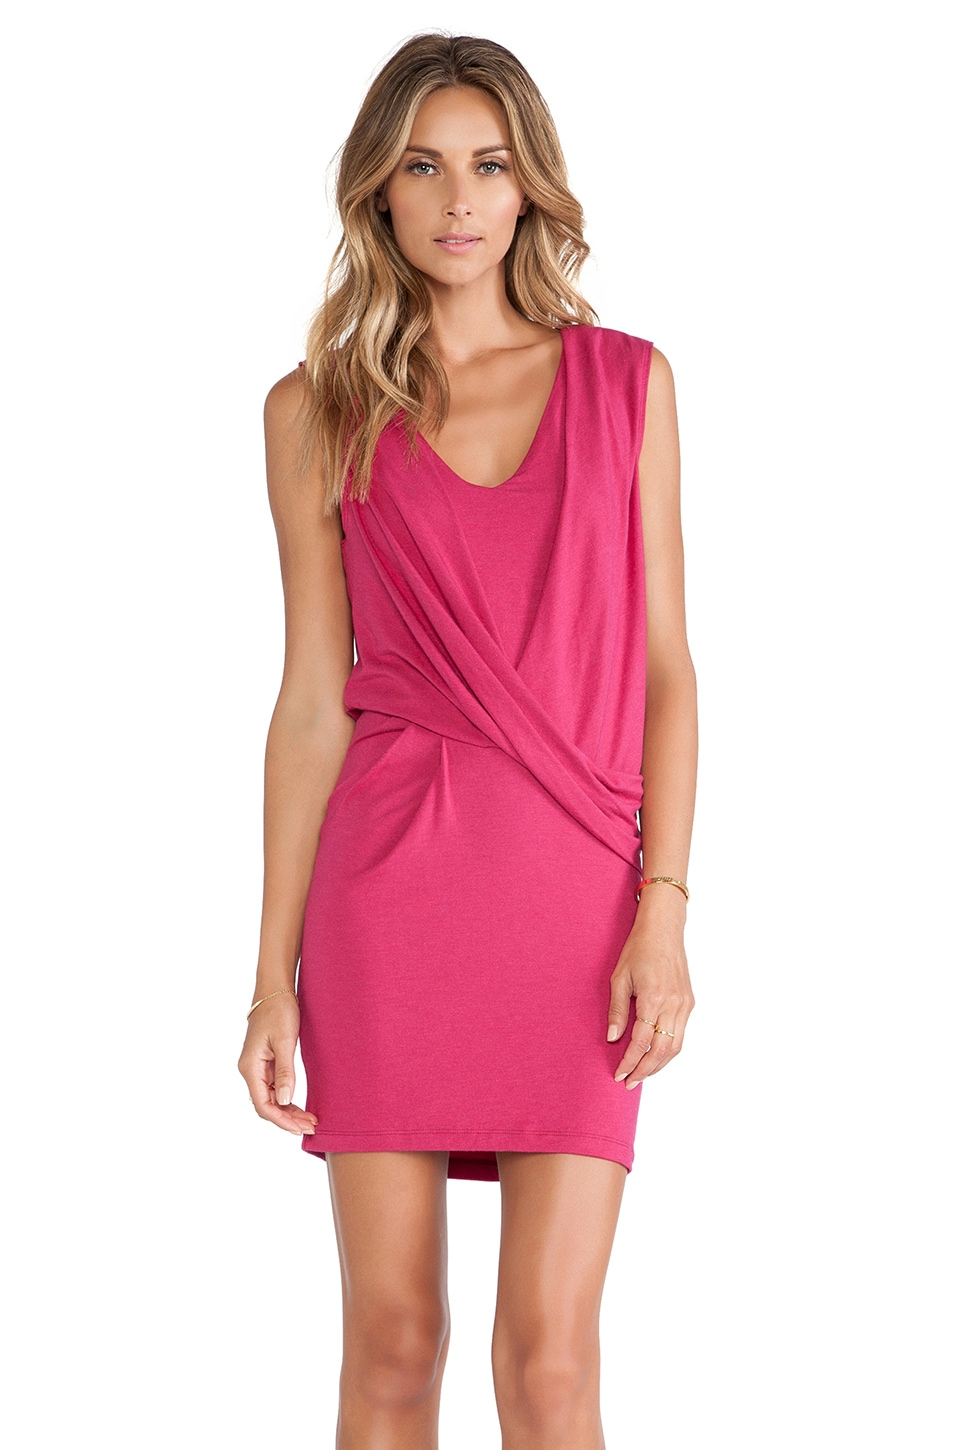 Heather V Neck Tuck Dress in Heather Azalea